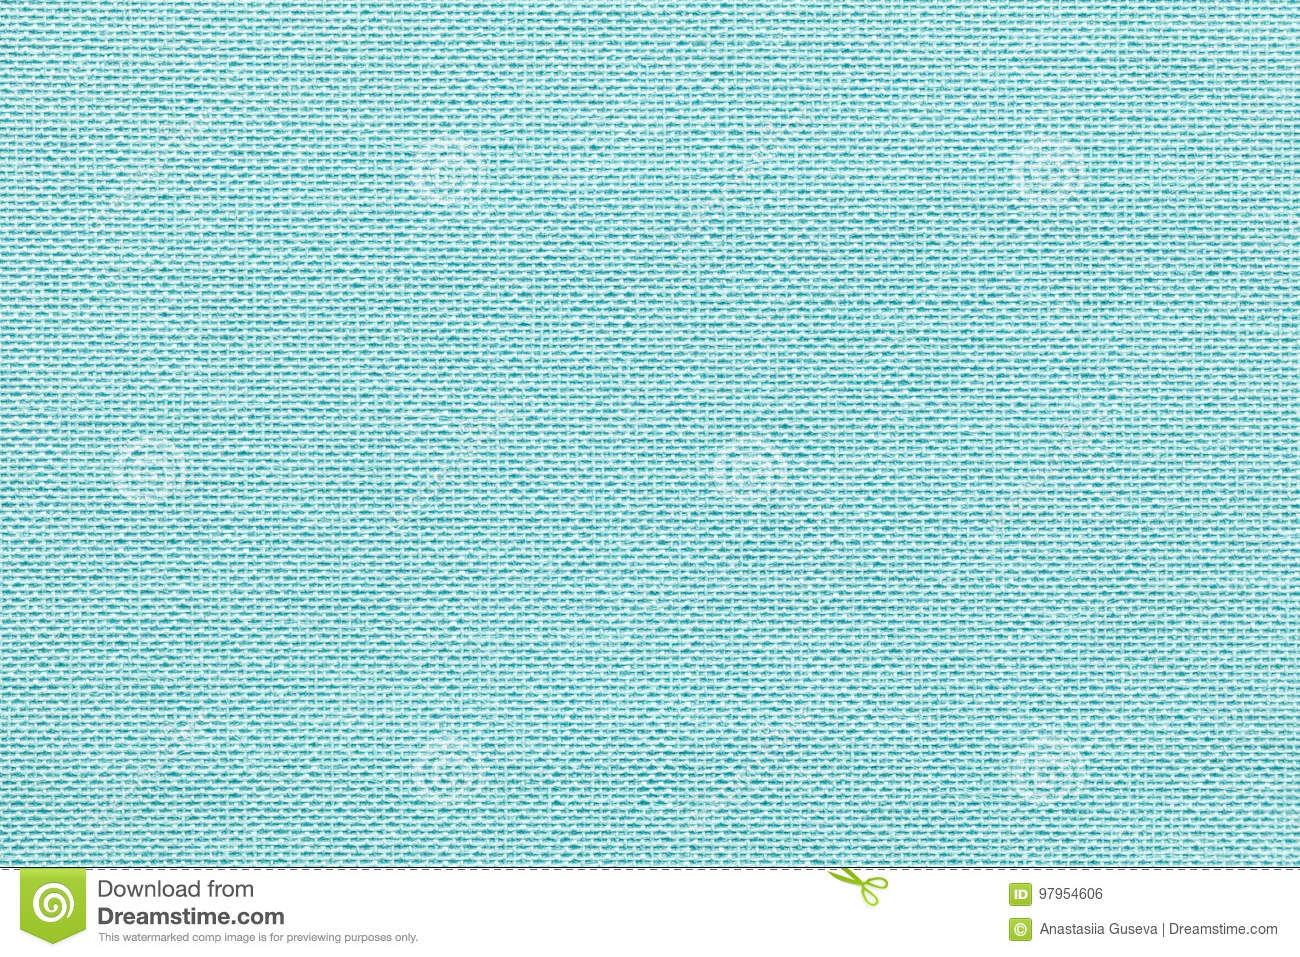 Light blue background from a textile material with wicker pattern, closeup.